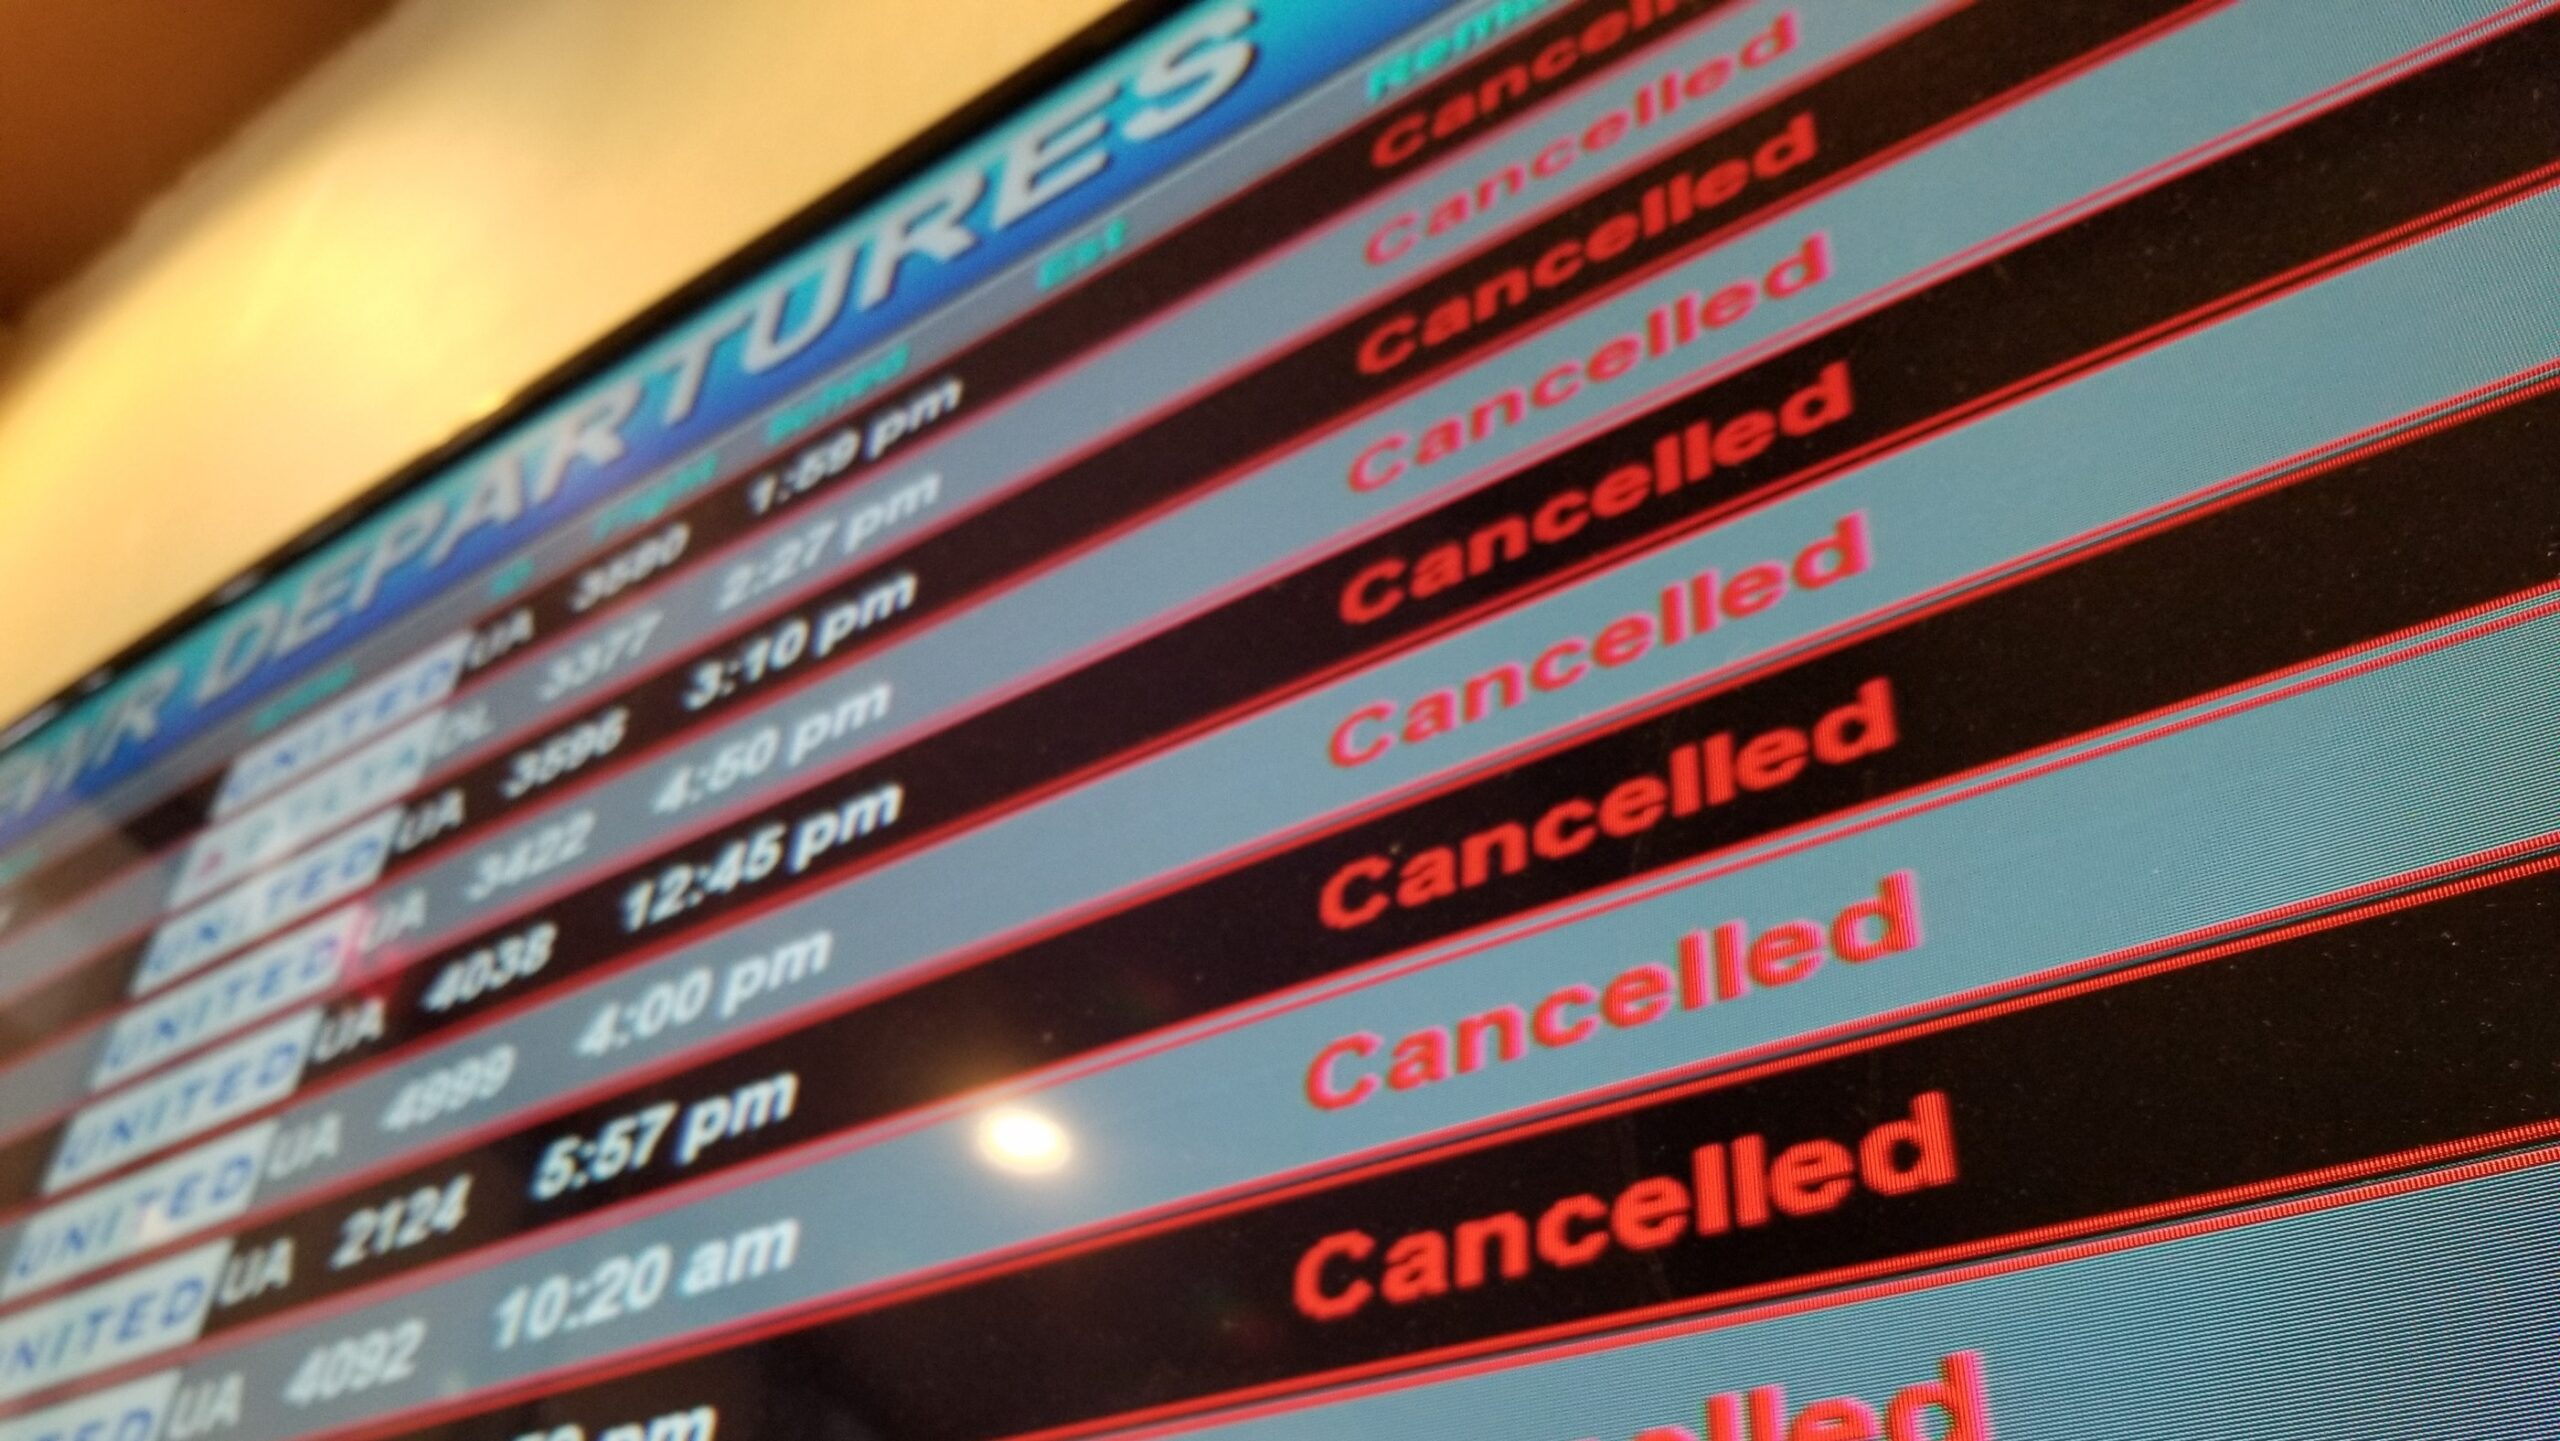 'Why I'm canceling trips now after traveling the last several months'